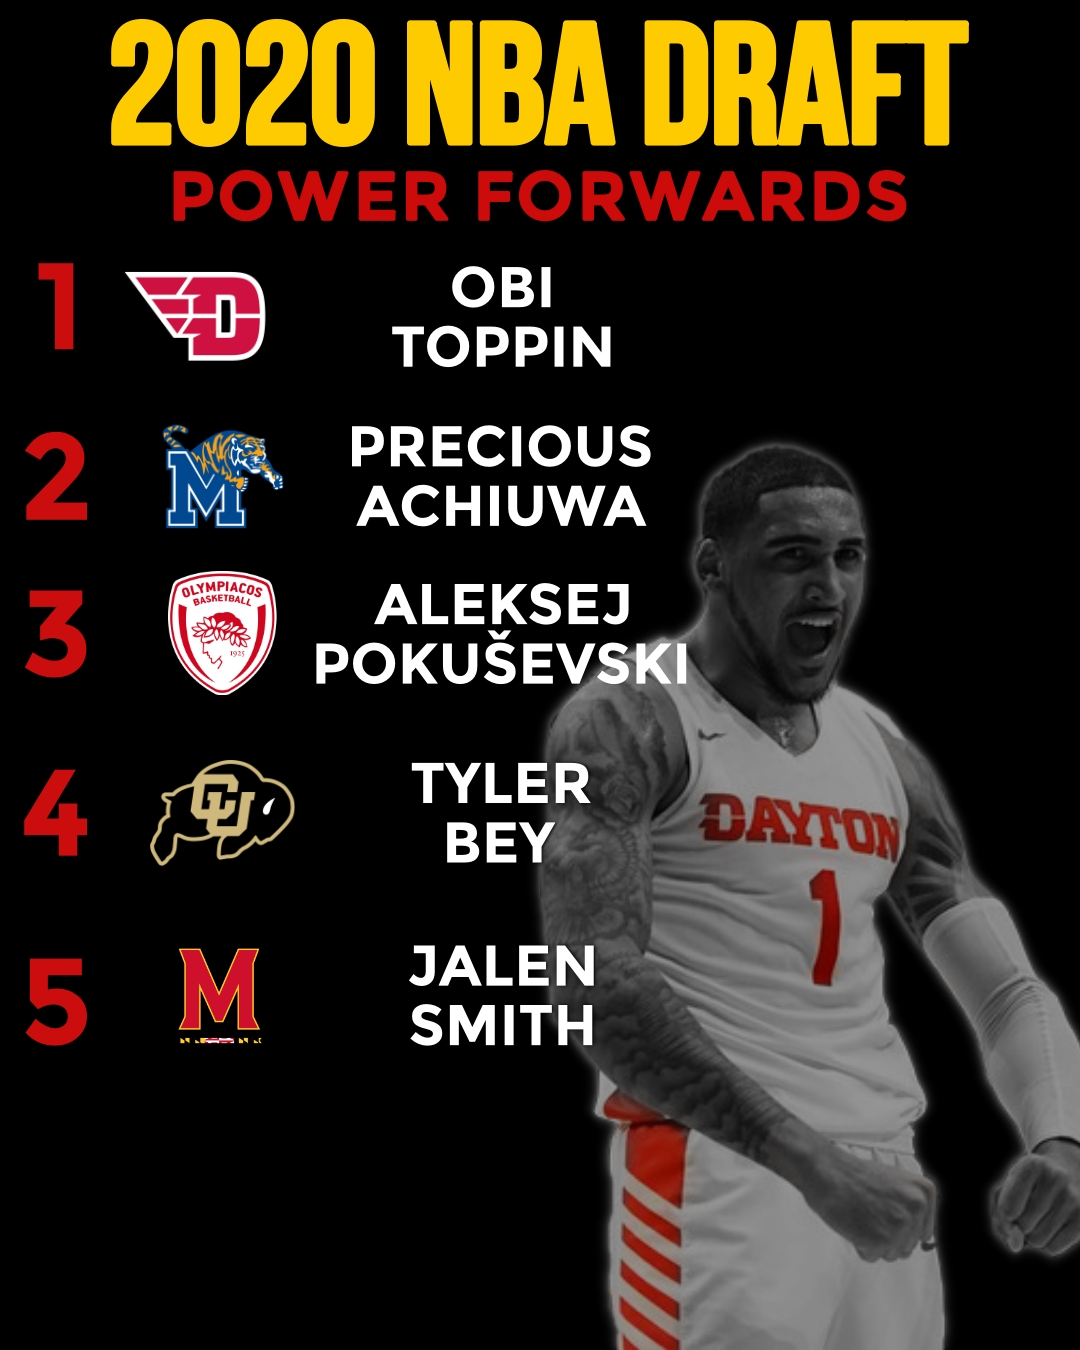 Top 5 Power Forwards